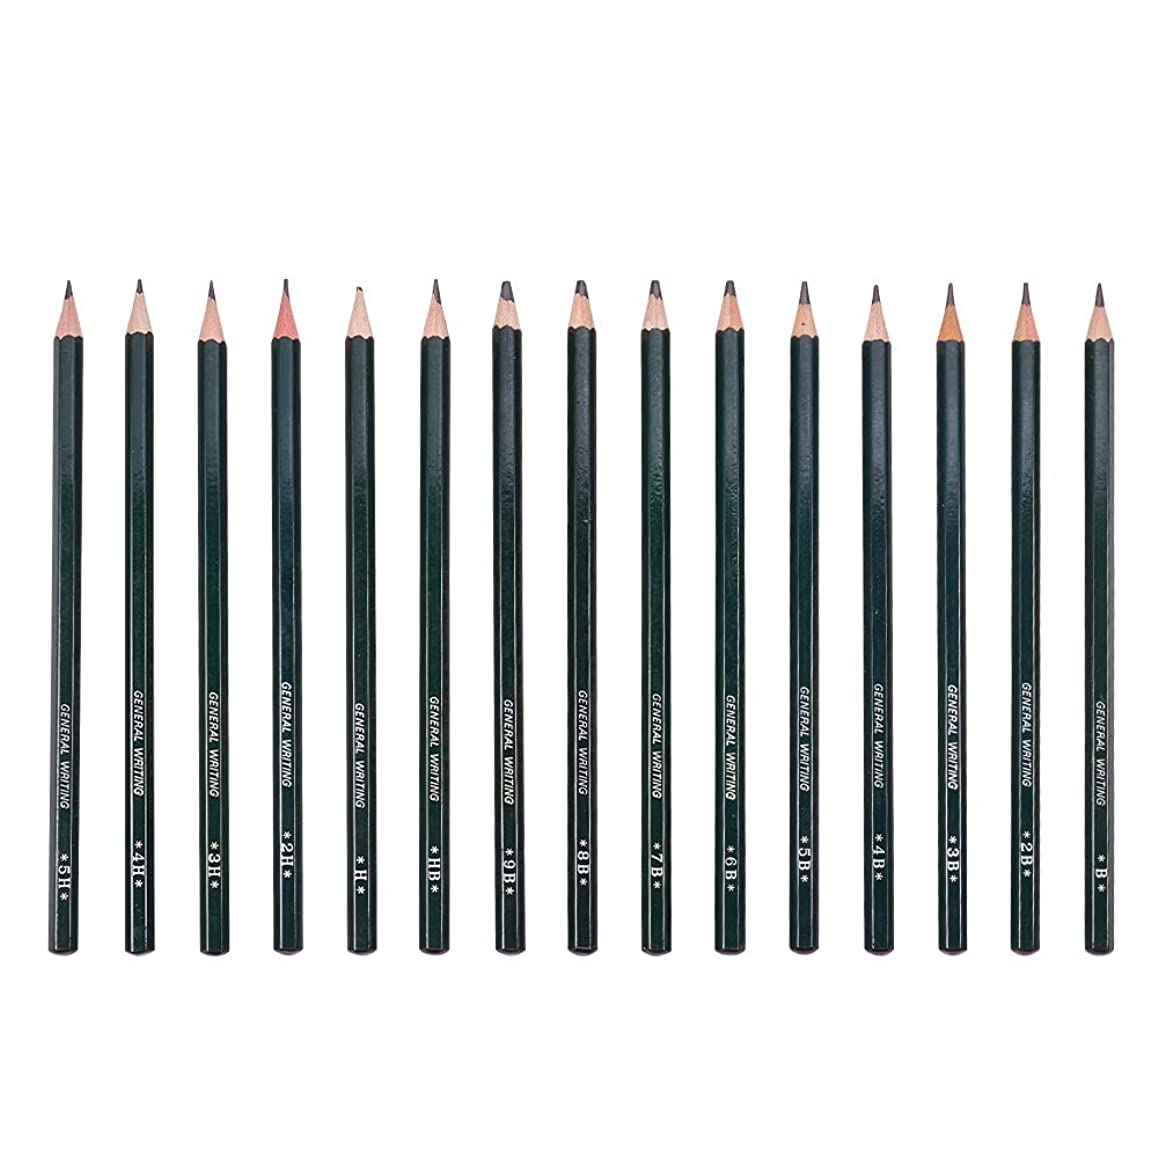 PandaHall Elite 18 Pieces Drawing Pencils 5H, 4H, 3H, 2H, H, HB, B, 2B, 3B, 4B, 5B, 6B,7B, 8B, 9B Graphite Sketching Pencils Set for Adults and Kid Artists